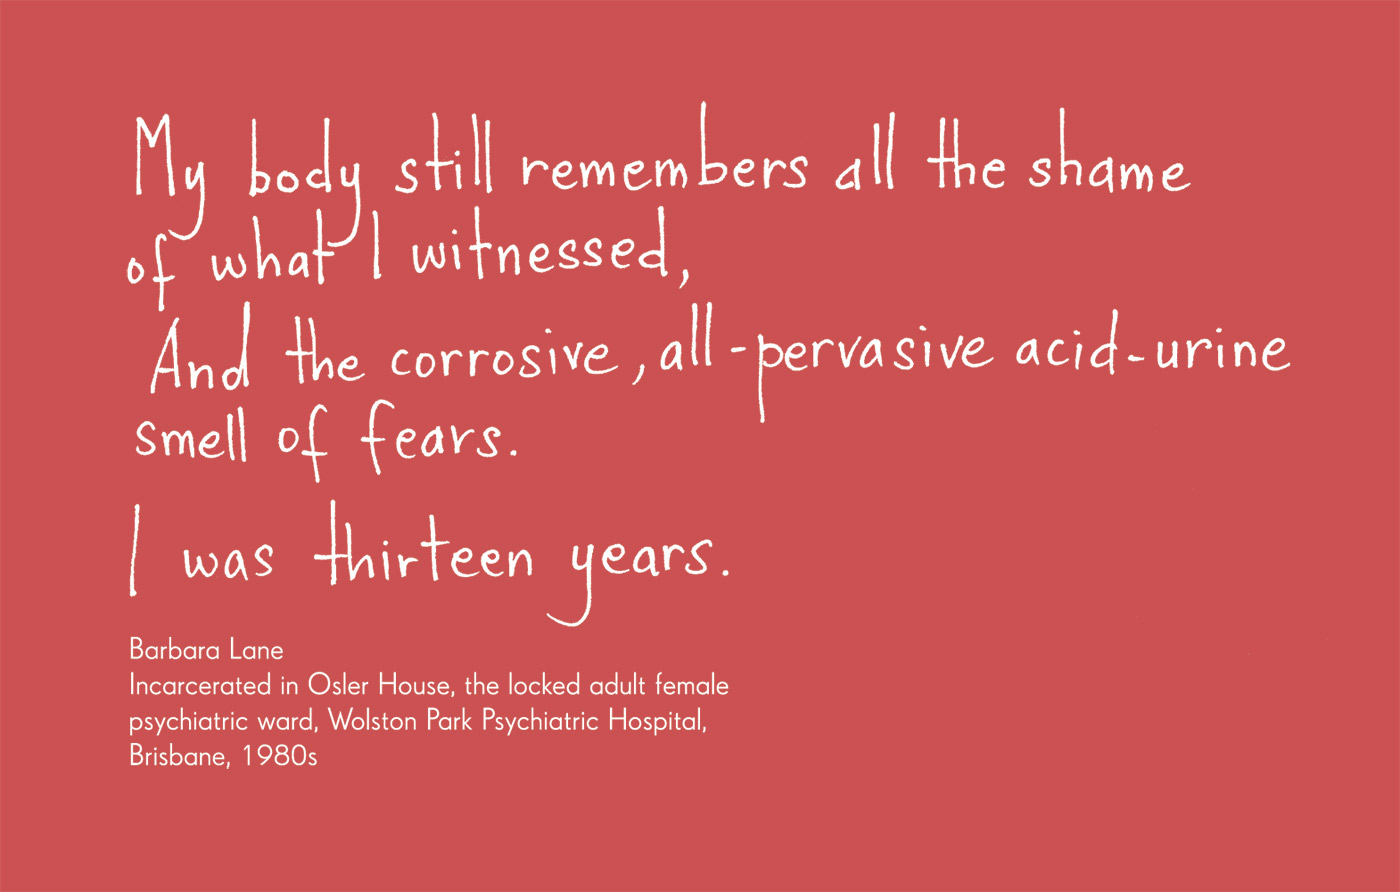 Exhibition graphic panel that reads: 'My body still remembers all the shame of what I witnessed, And the corrosive, all-pervasive acid-urine smell of fears. I was thirteen years.', attributed to 'Barbara Lane, Incarcerated in Osler House, the locked adult female psychiatric ward, Wolston Park Psychiatric Hospital, Queensland, 1980s'. - click to view larger image